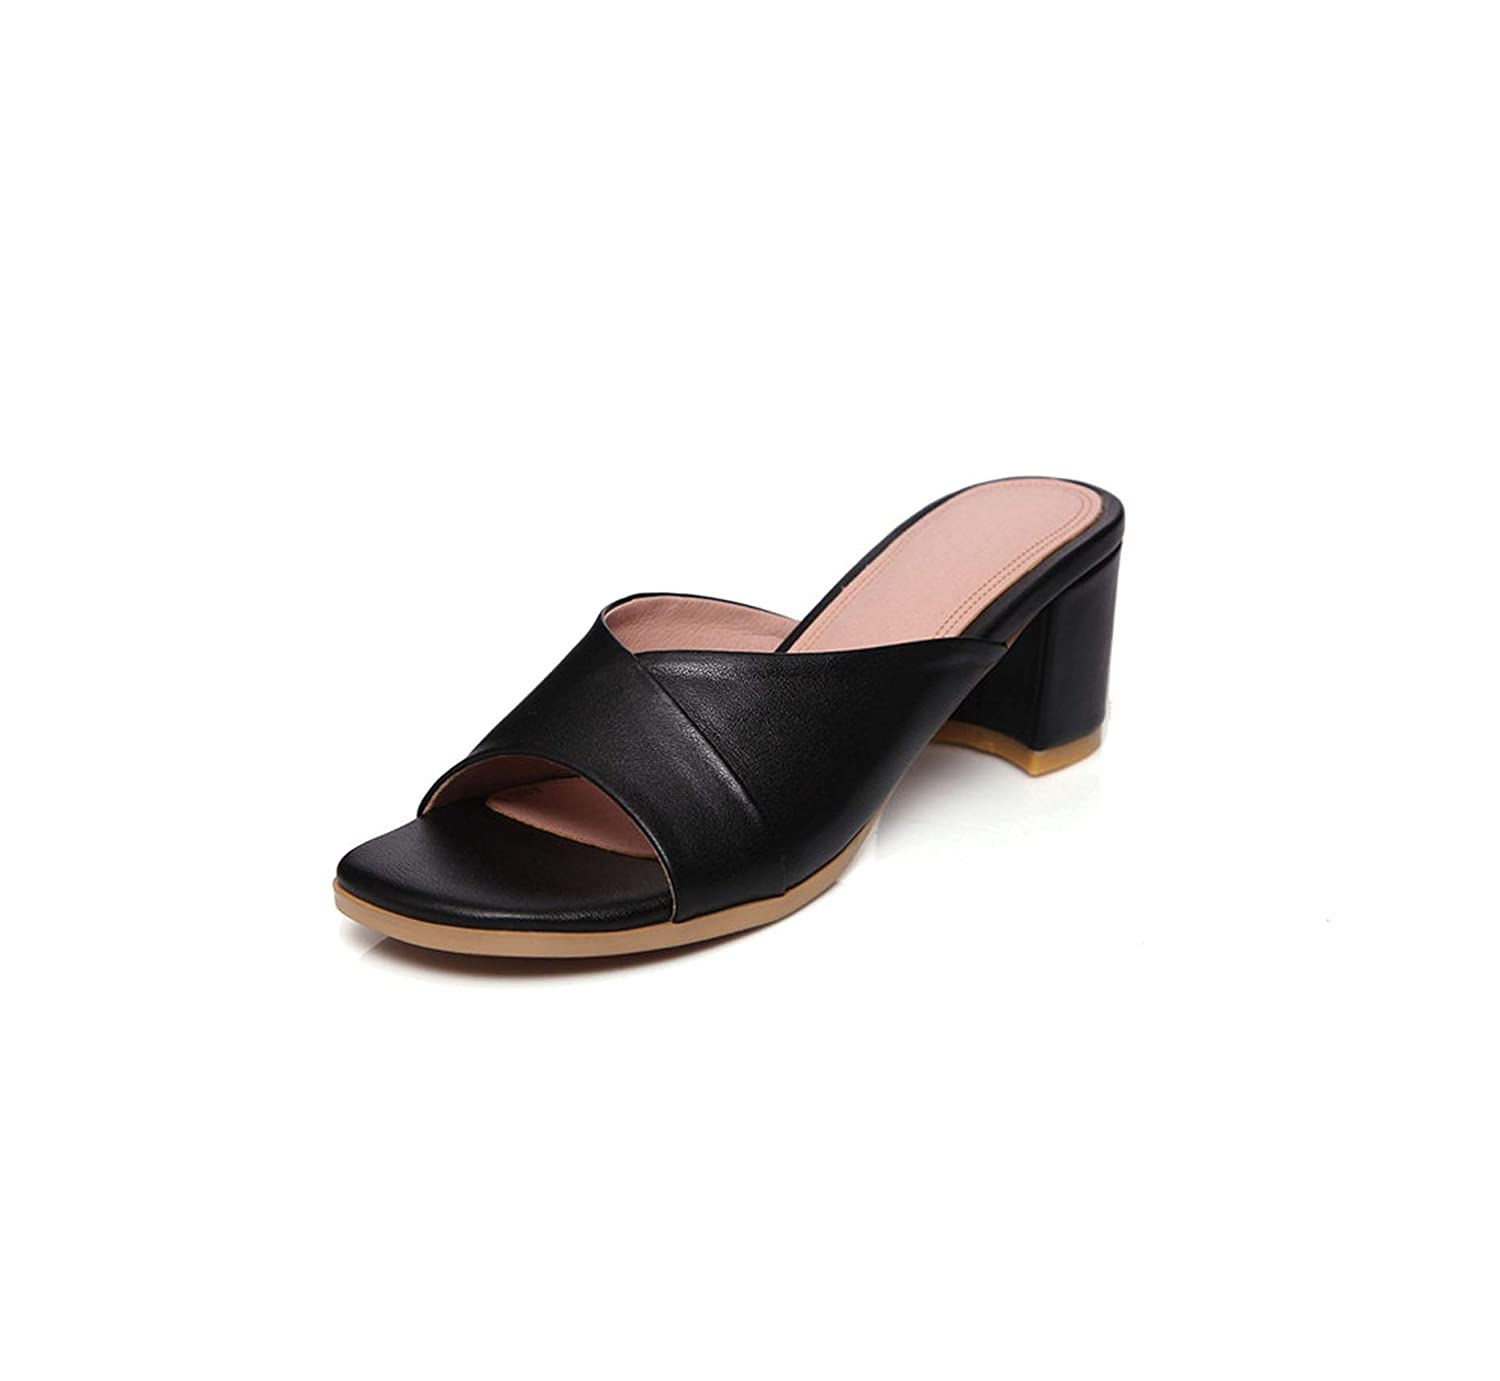 Black Longbao Black Red Genuine Leather Summer Slippers Comfort High Heeled Sandals Female New shoes Woman